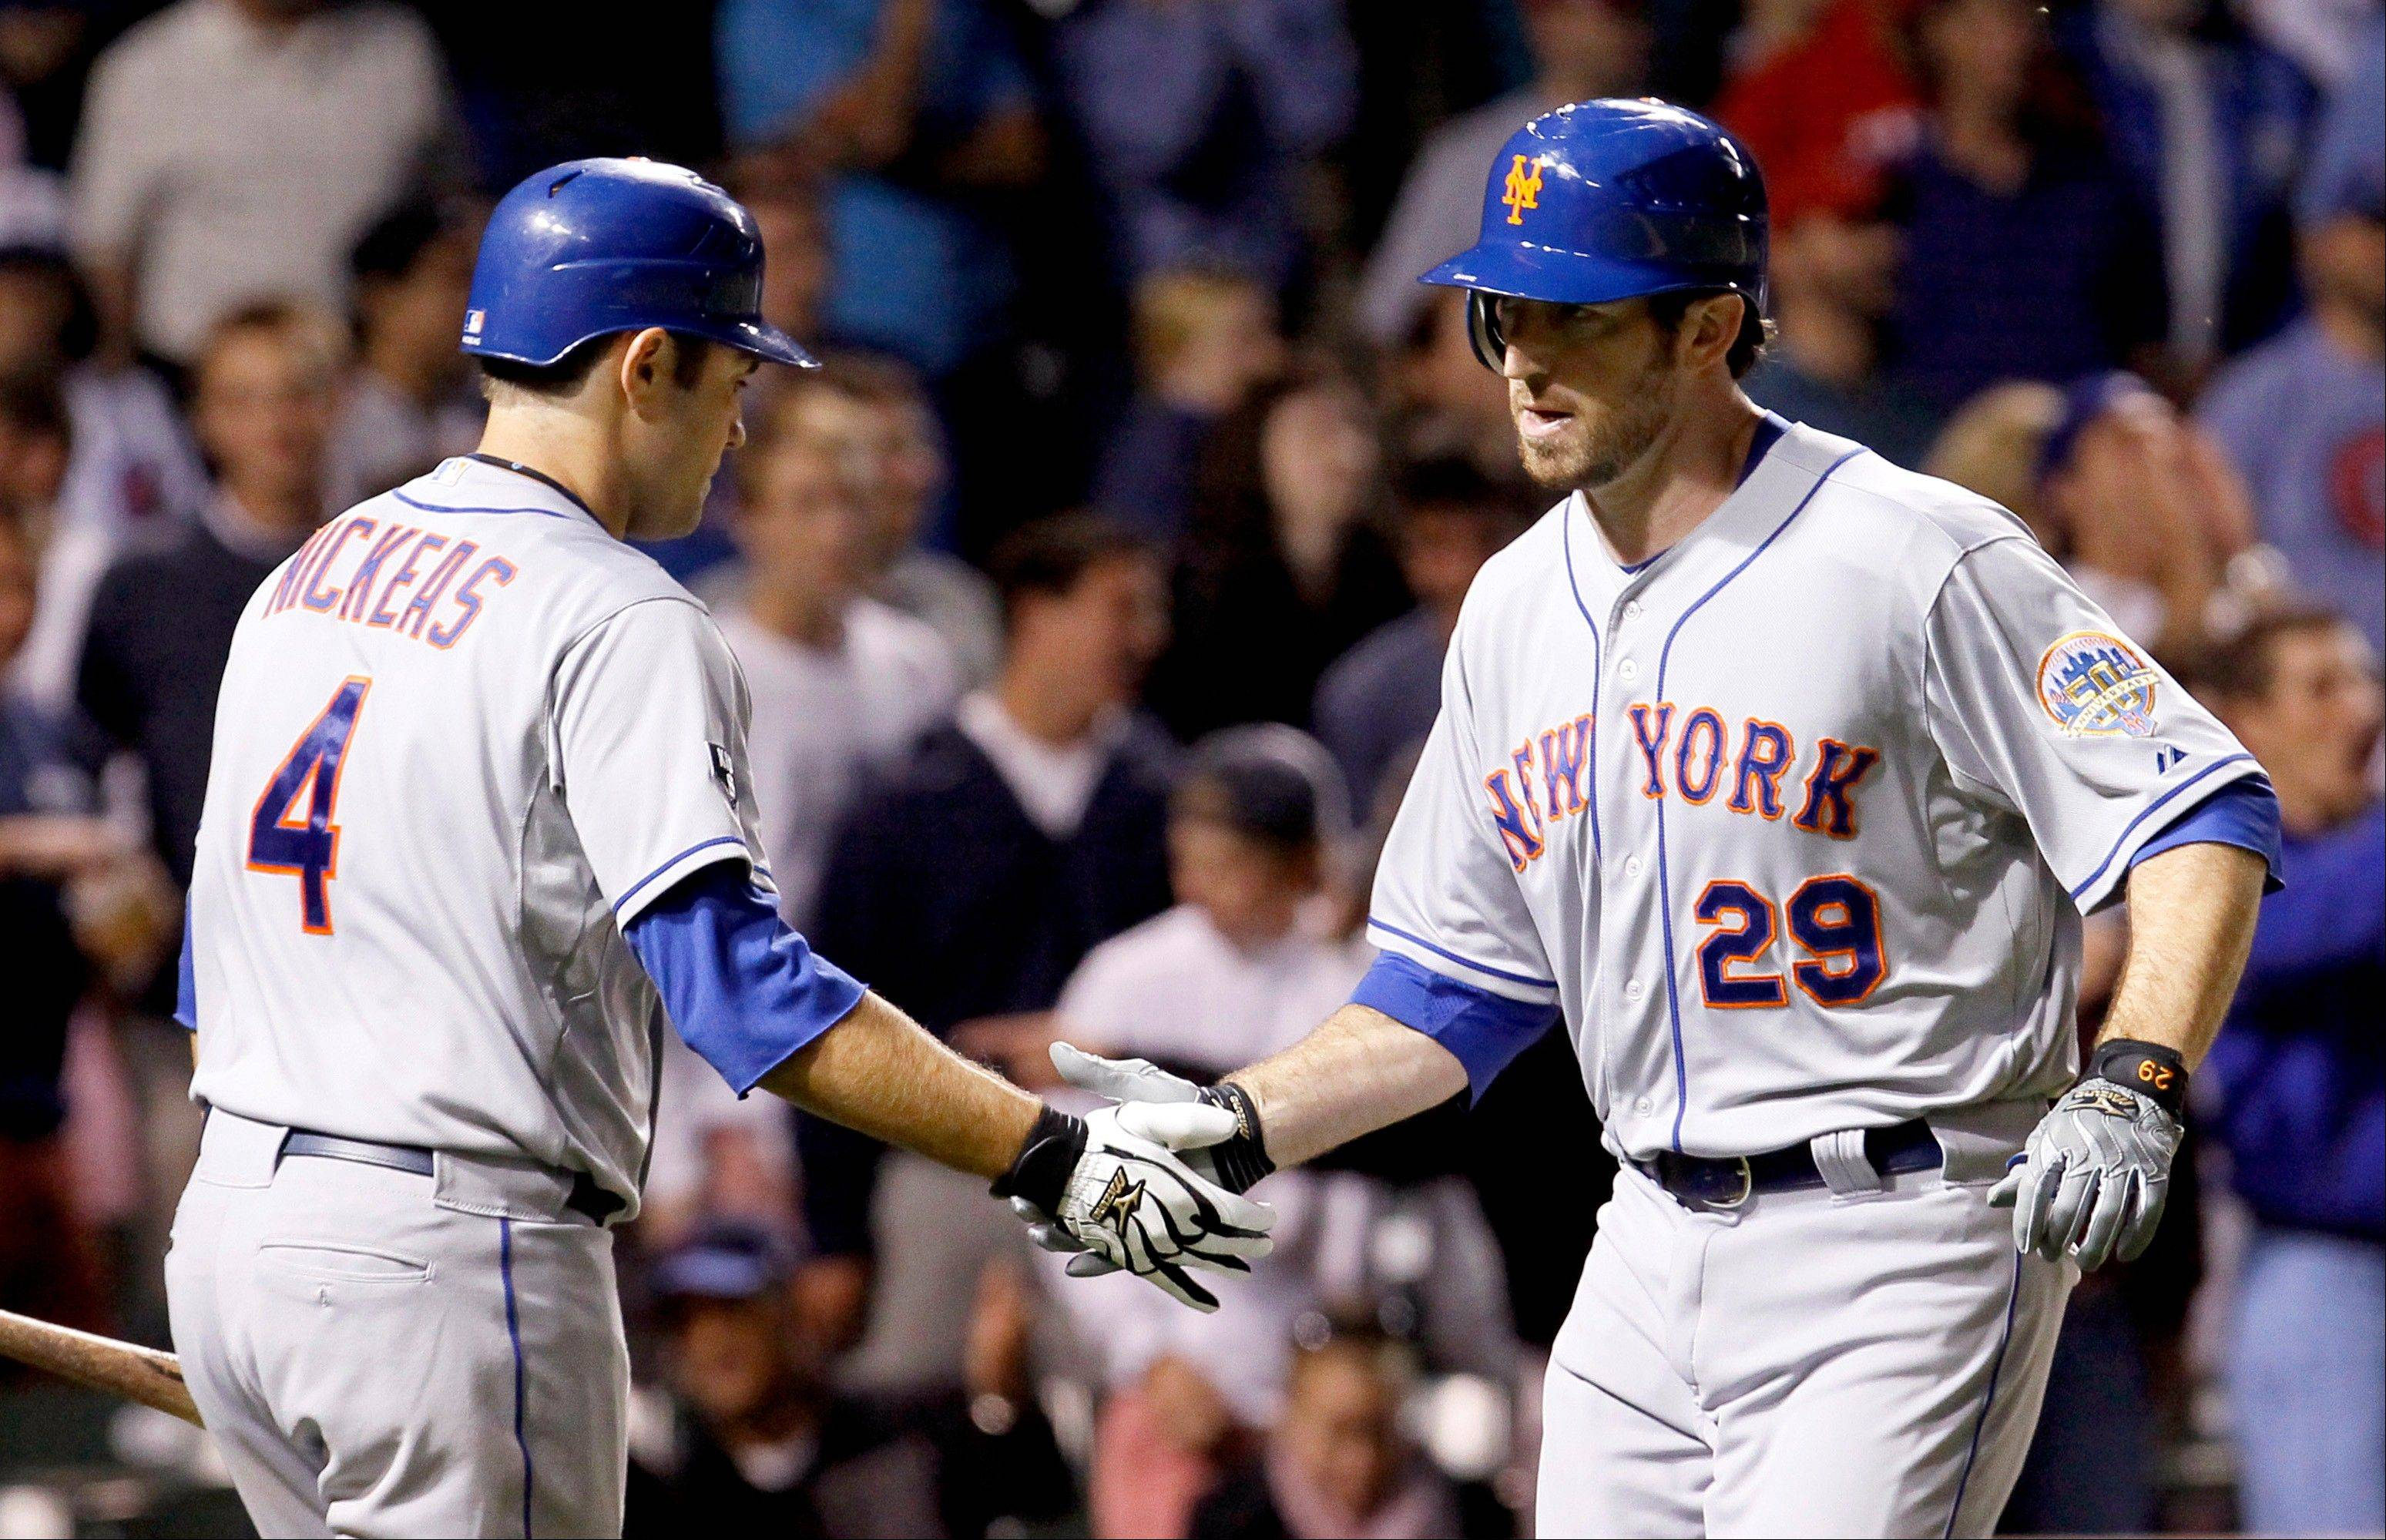 New York Mets first baseman Ike Davis, right, has a perspective on what the Cubs' Anthony Rizzo might be going through.